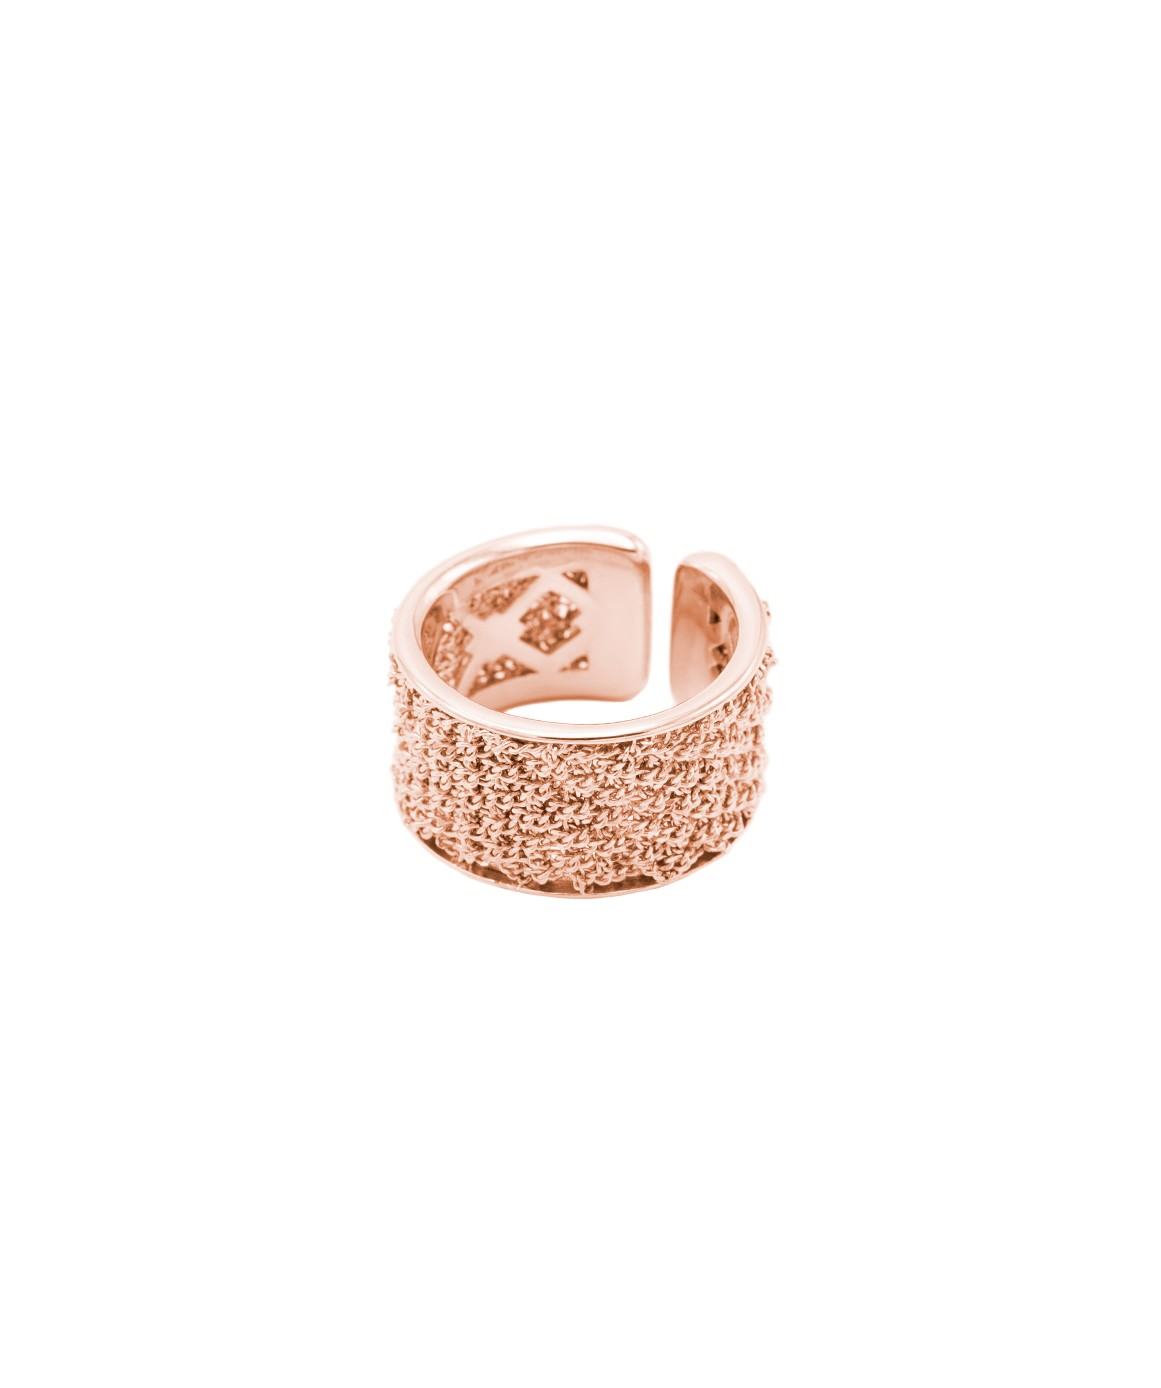 SPARKLE Ring in Sterling Silver 14Kt. Rose gold plated